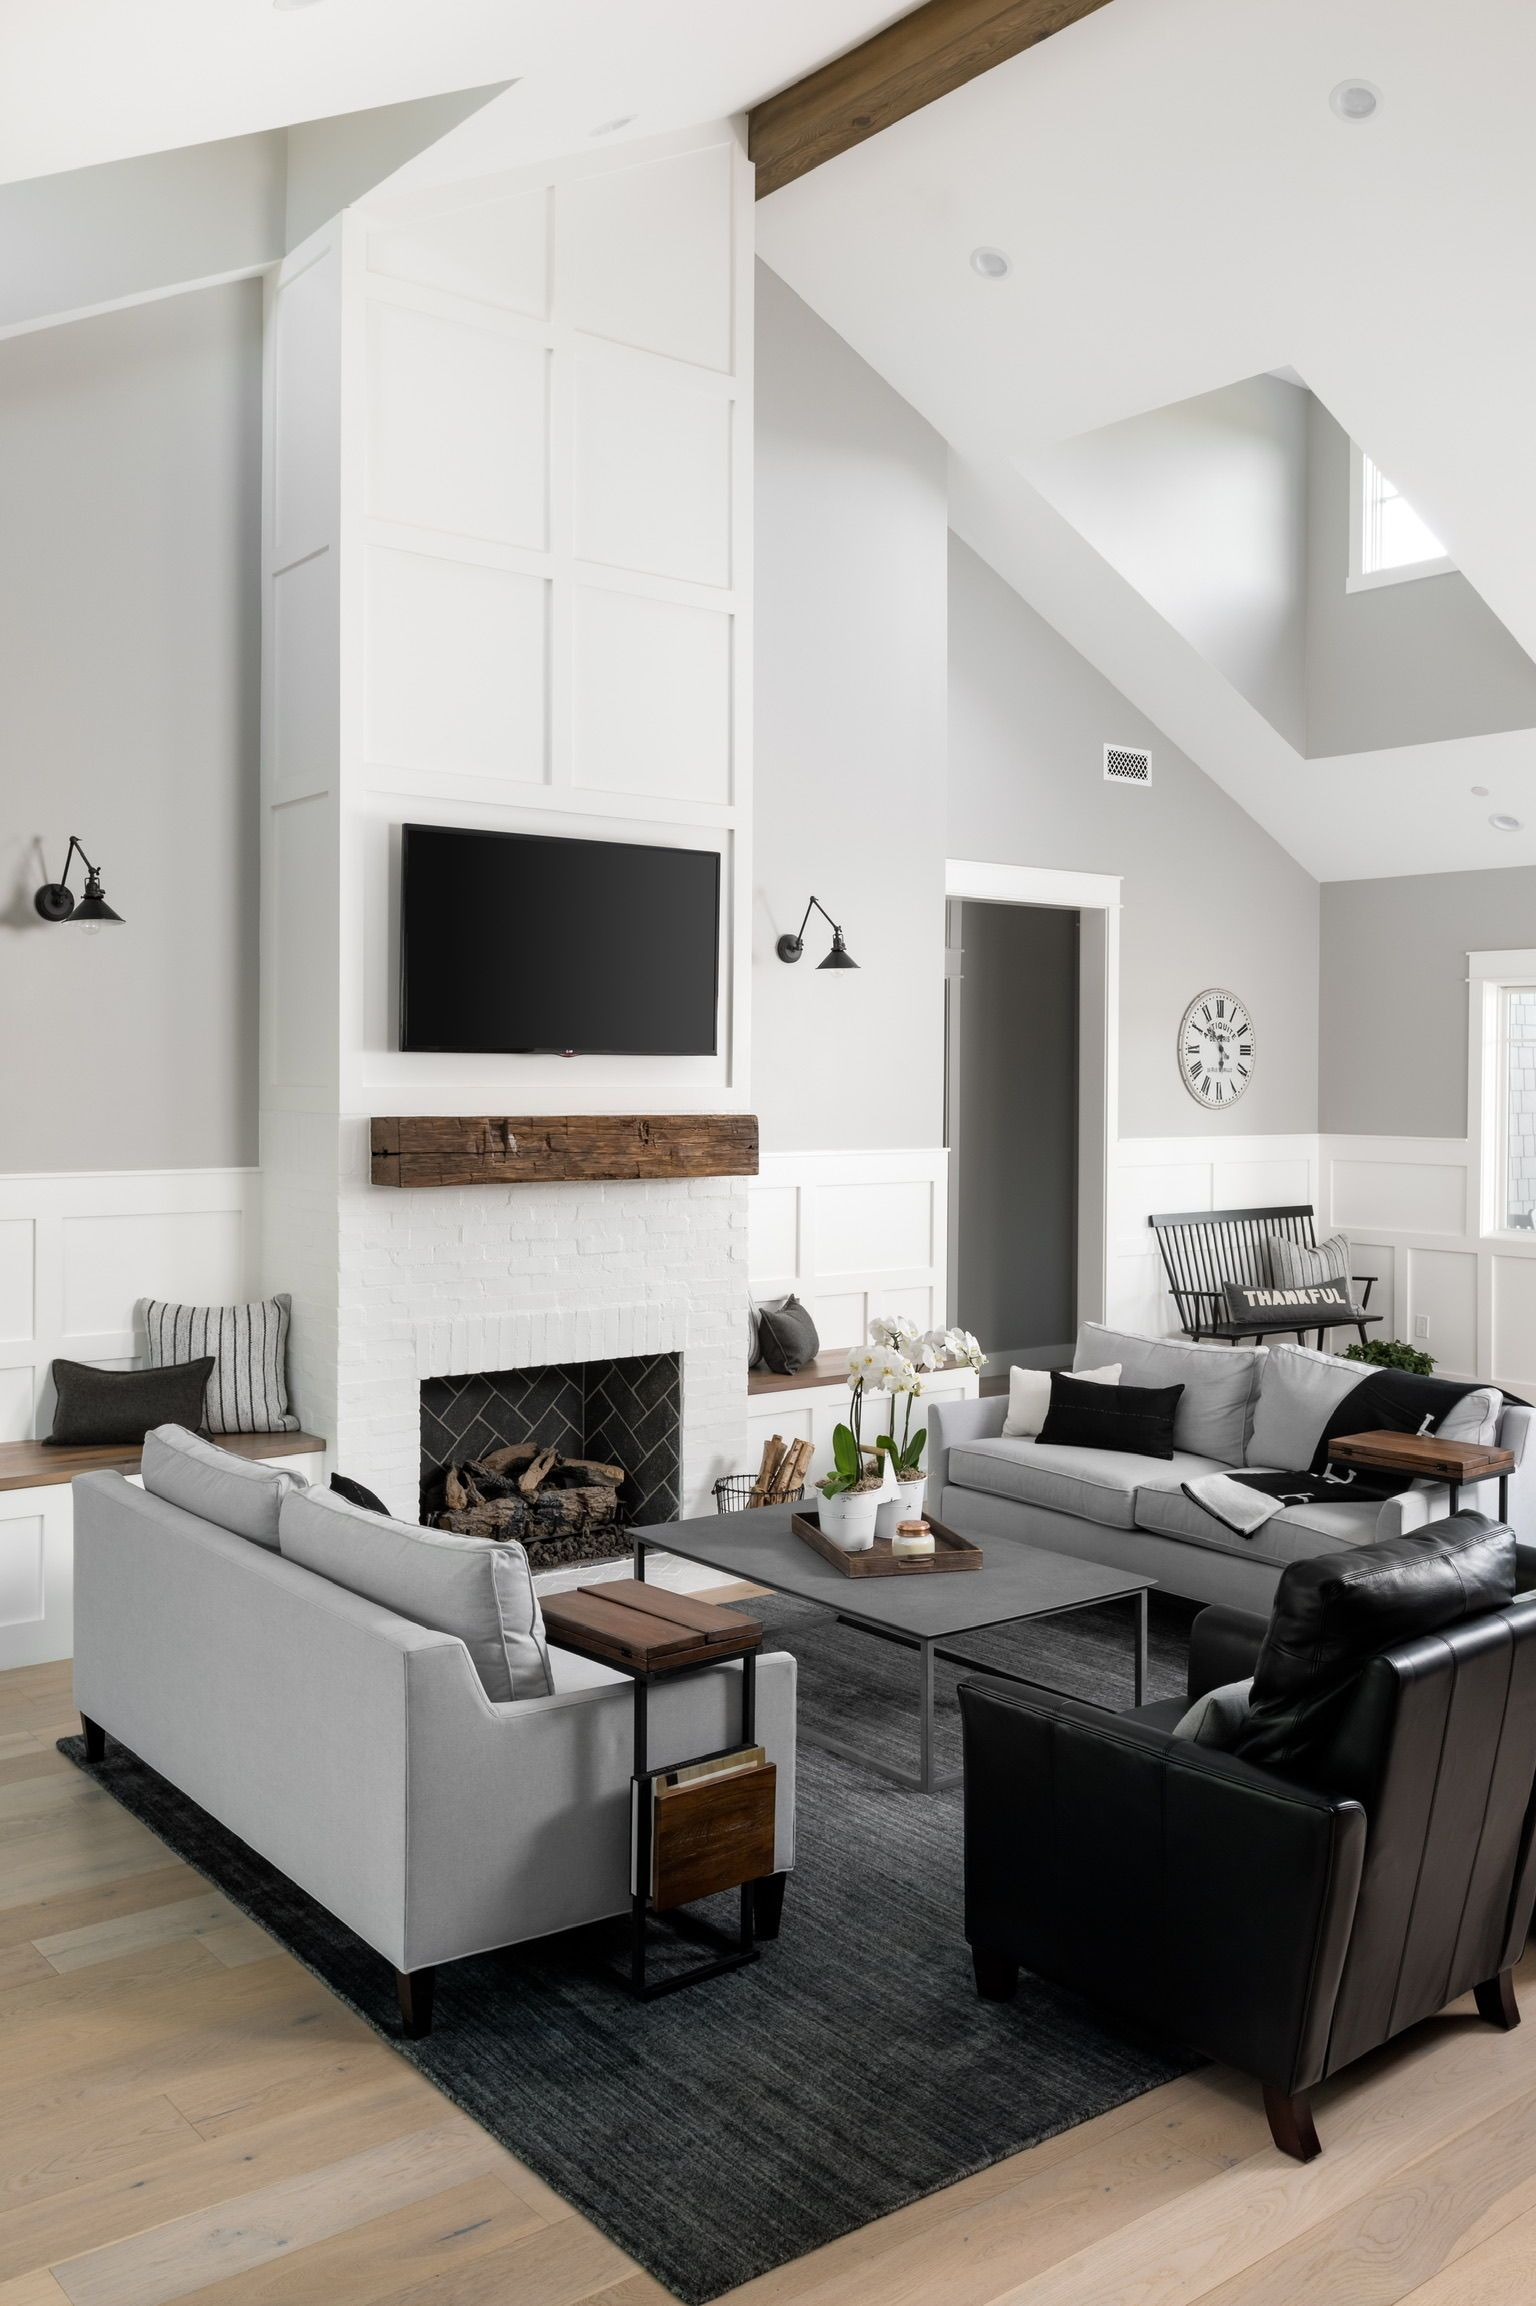 Living Room Fireplace Wall Ideas In 2020 Beams Living Room Vaulted Living Rooms Vaulted Ceiling Living Room